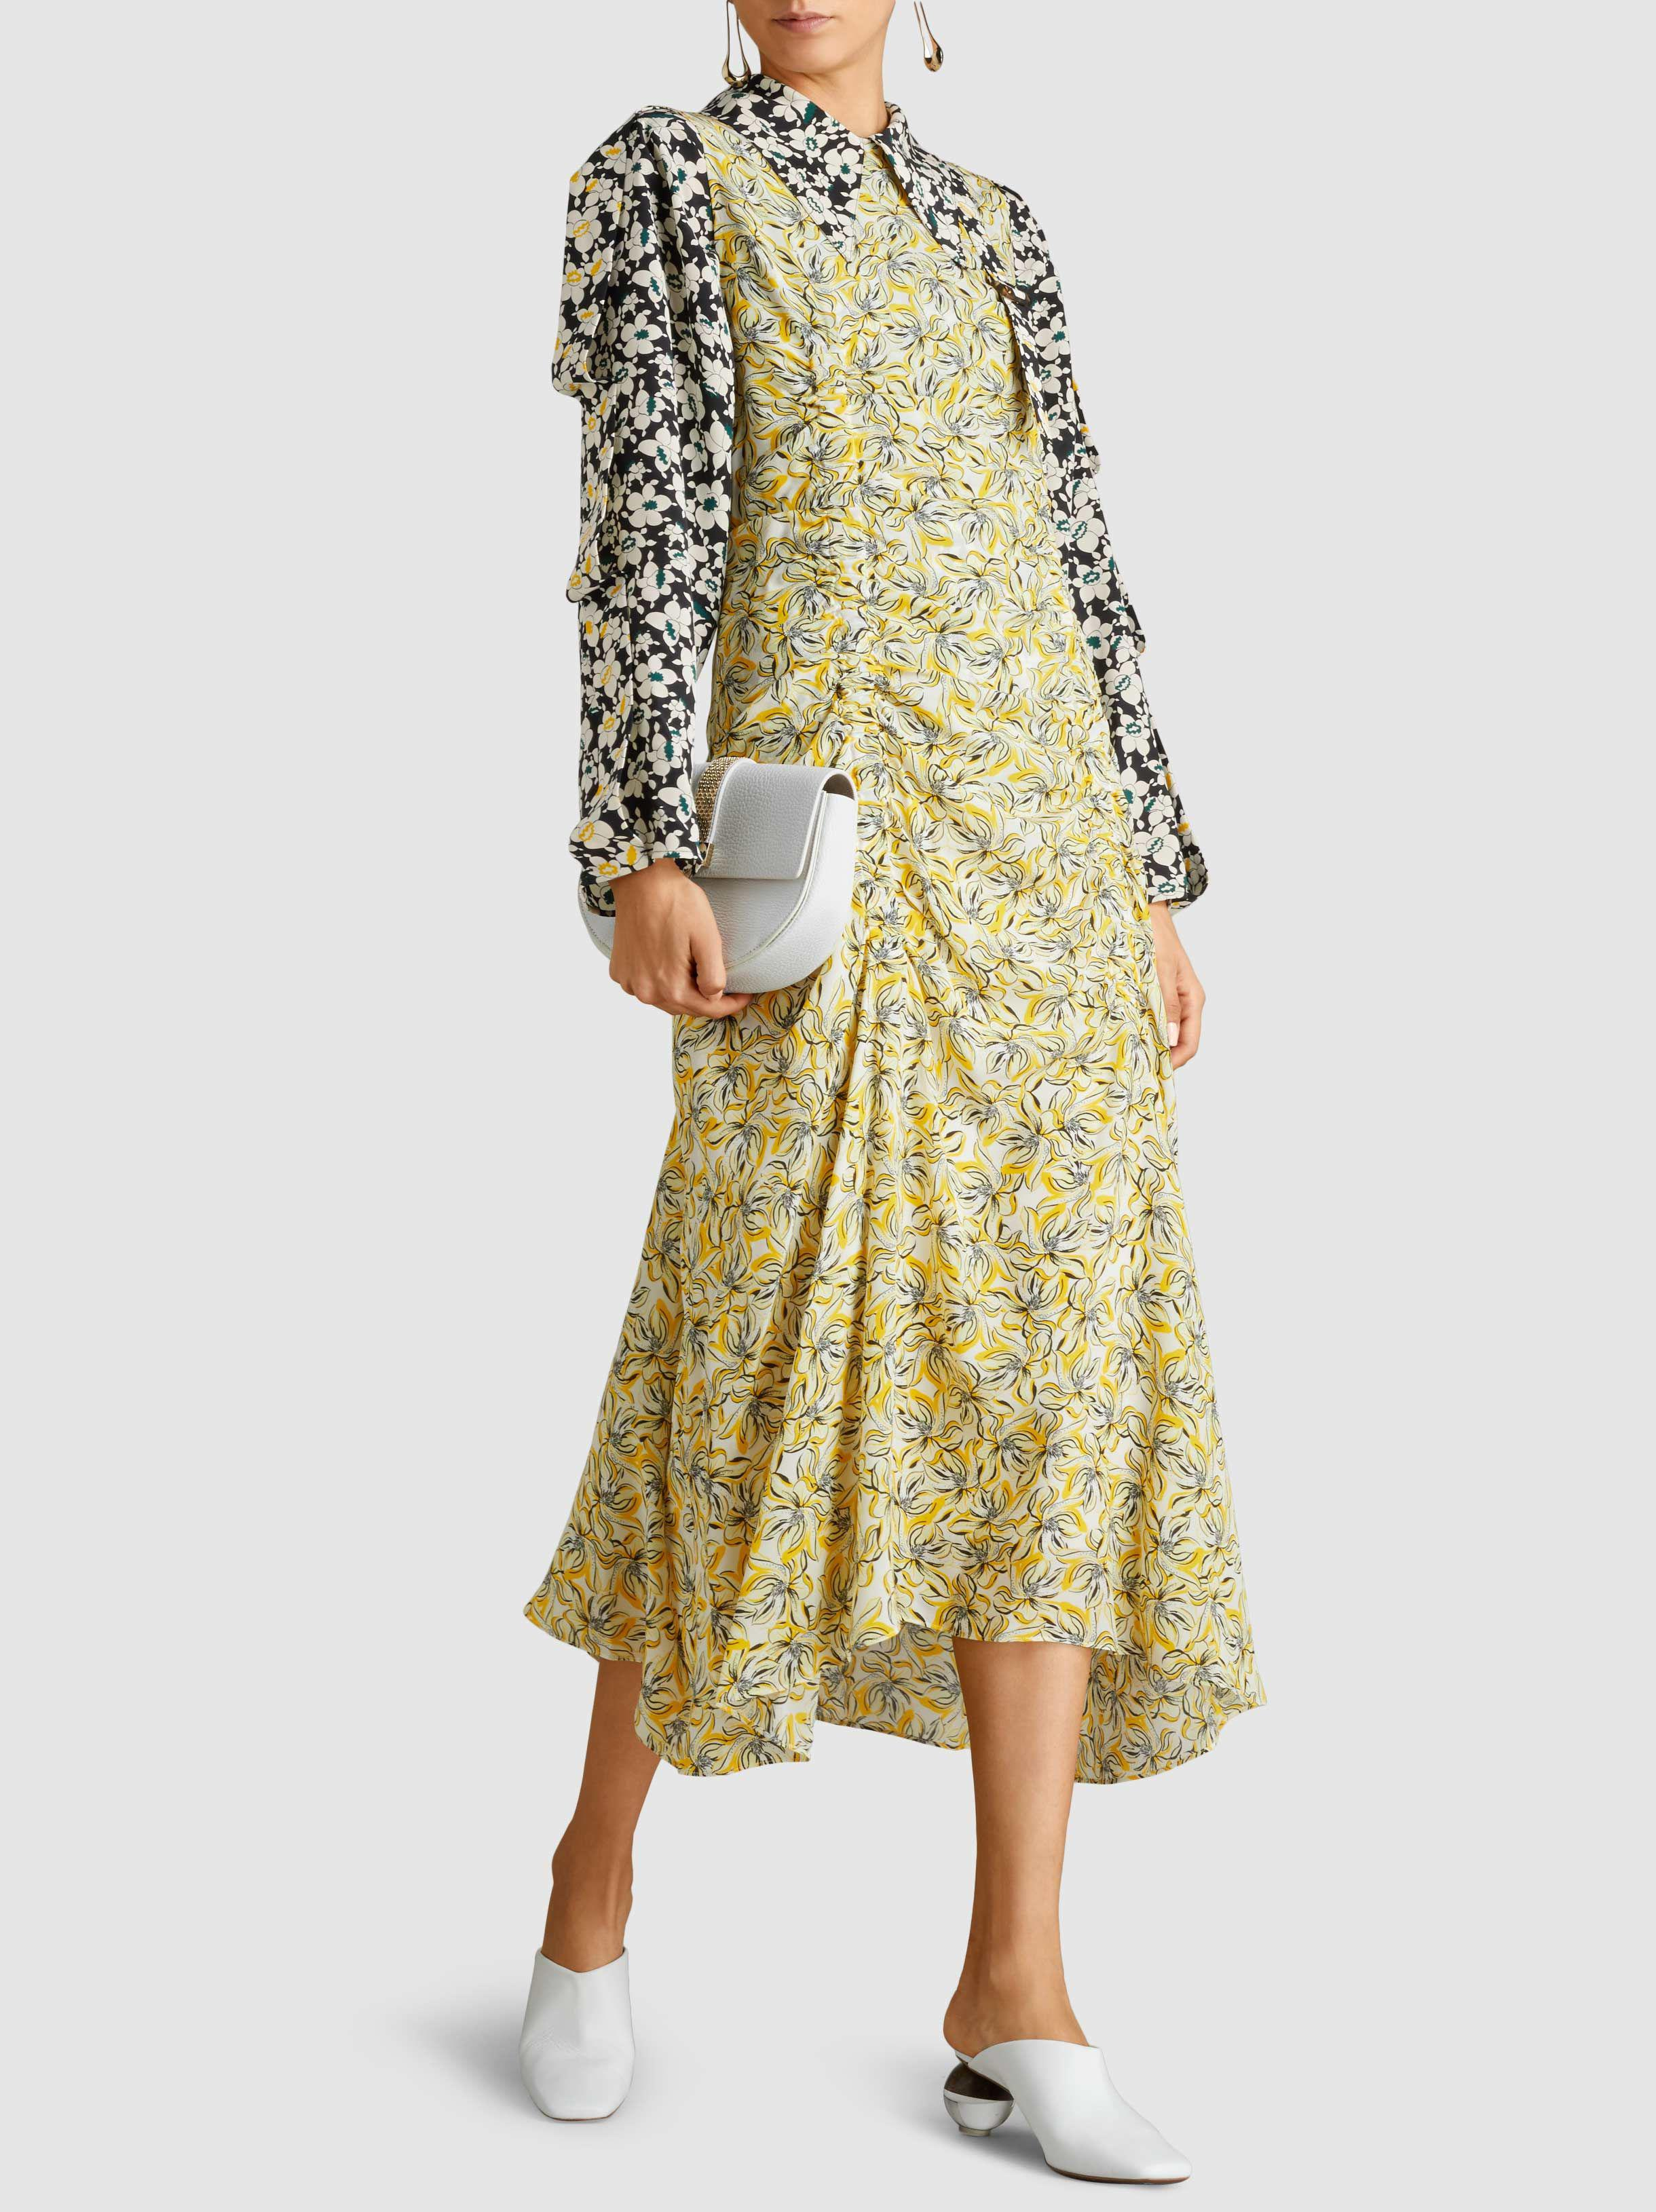 Cheap Sale Reliable Free Shipping New Arrival Wildflower Hall Midi Dress Joseph Footlocker Online New Lower Prices Store With Big Discount VChcd4